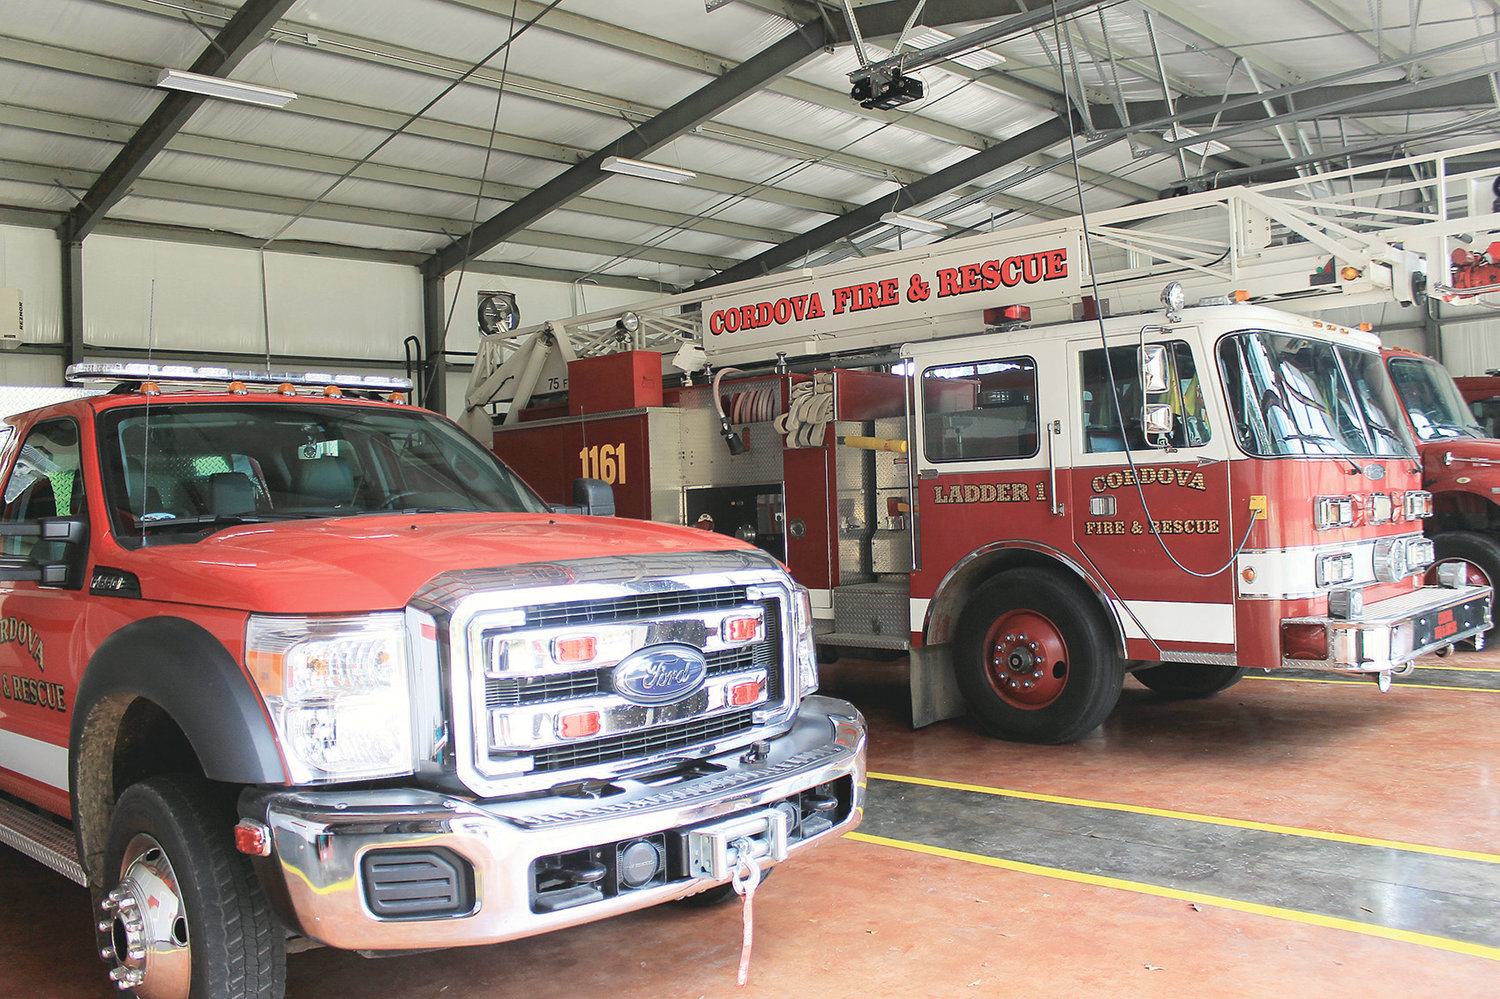 An open house will be held at the new Cordova Fire Department on Saturday from 10 a.m. to 2 p.m.